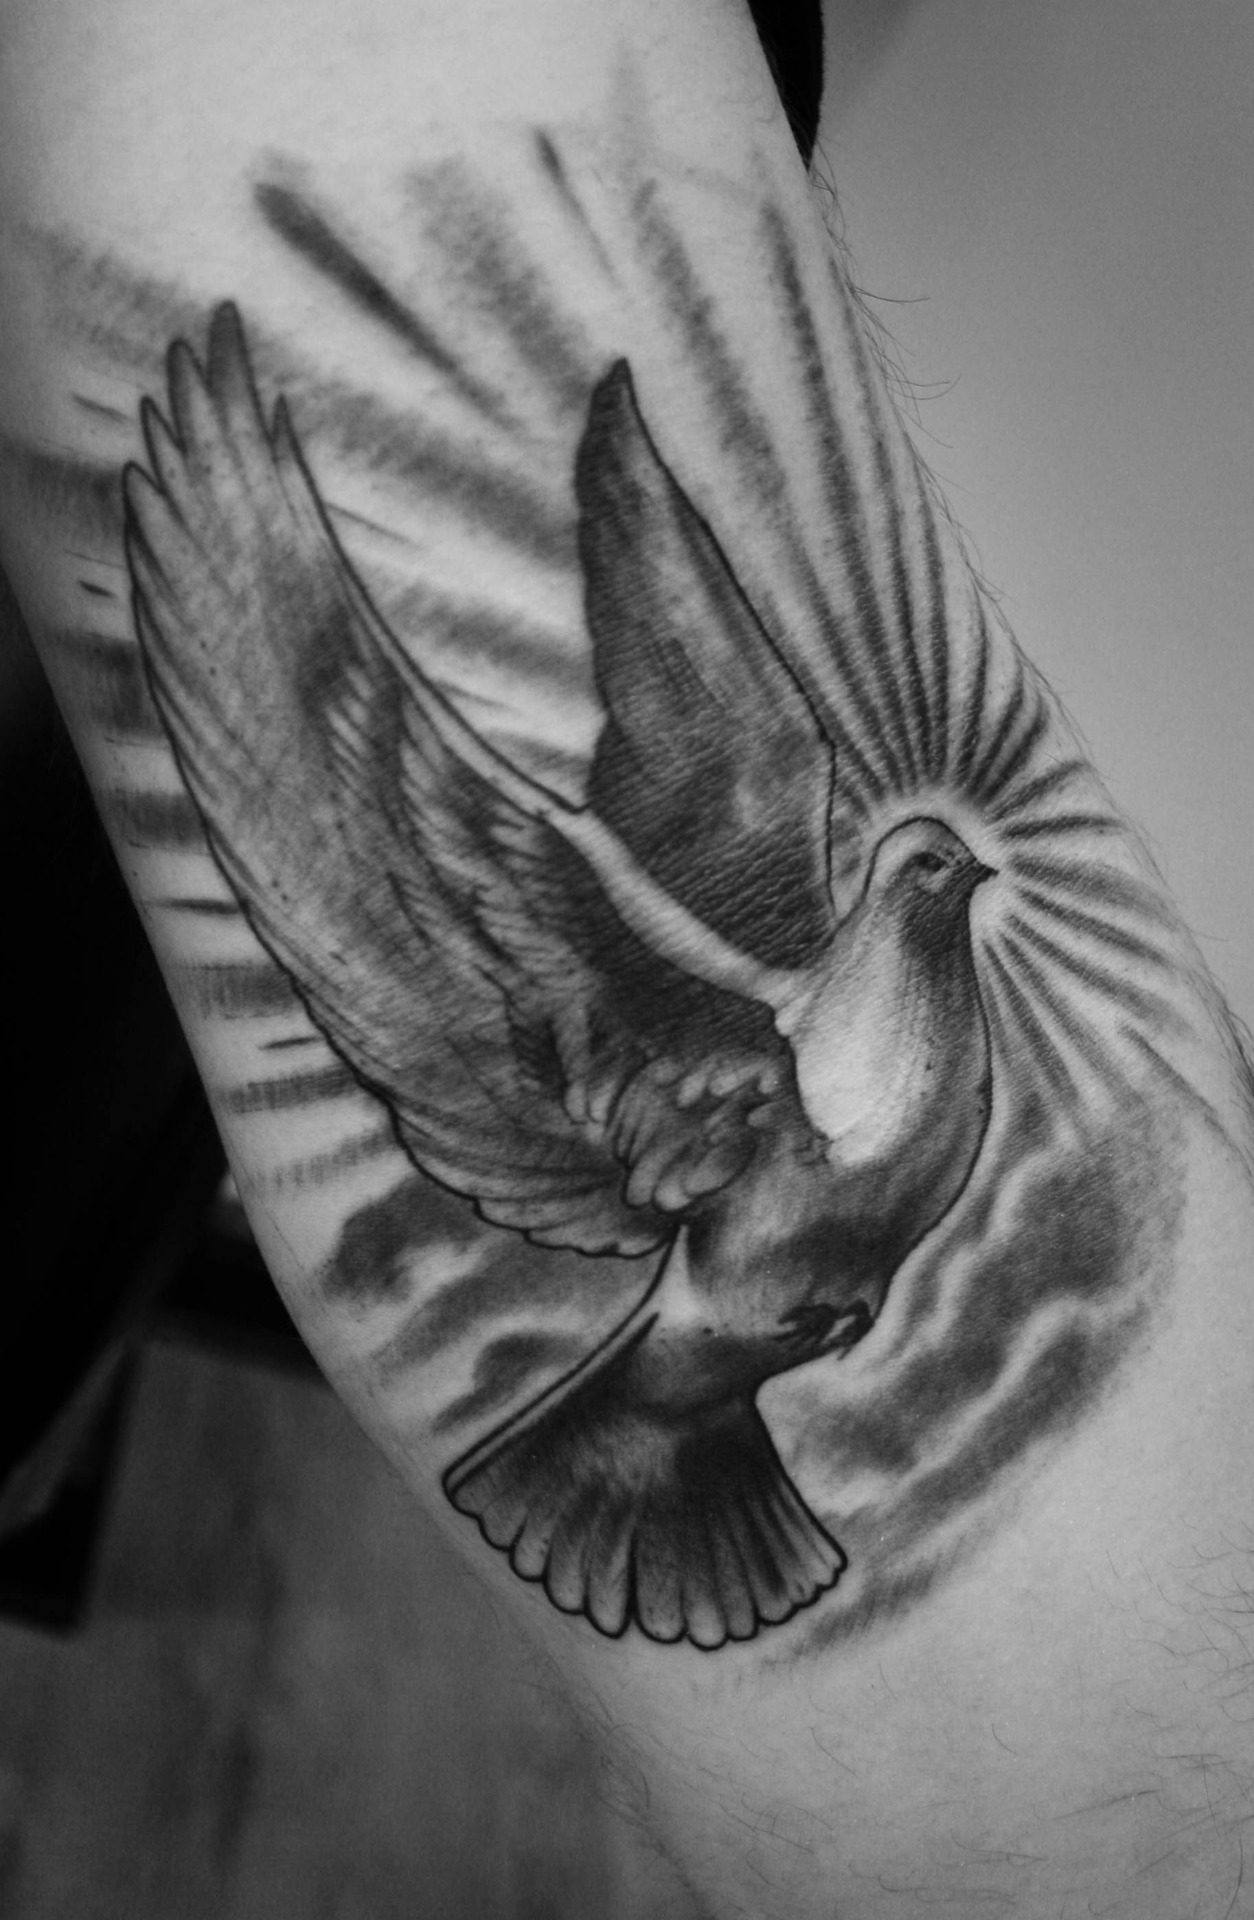 Black & White Flying Bird Tattoo Design